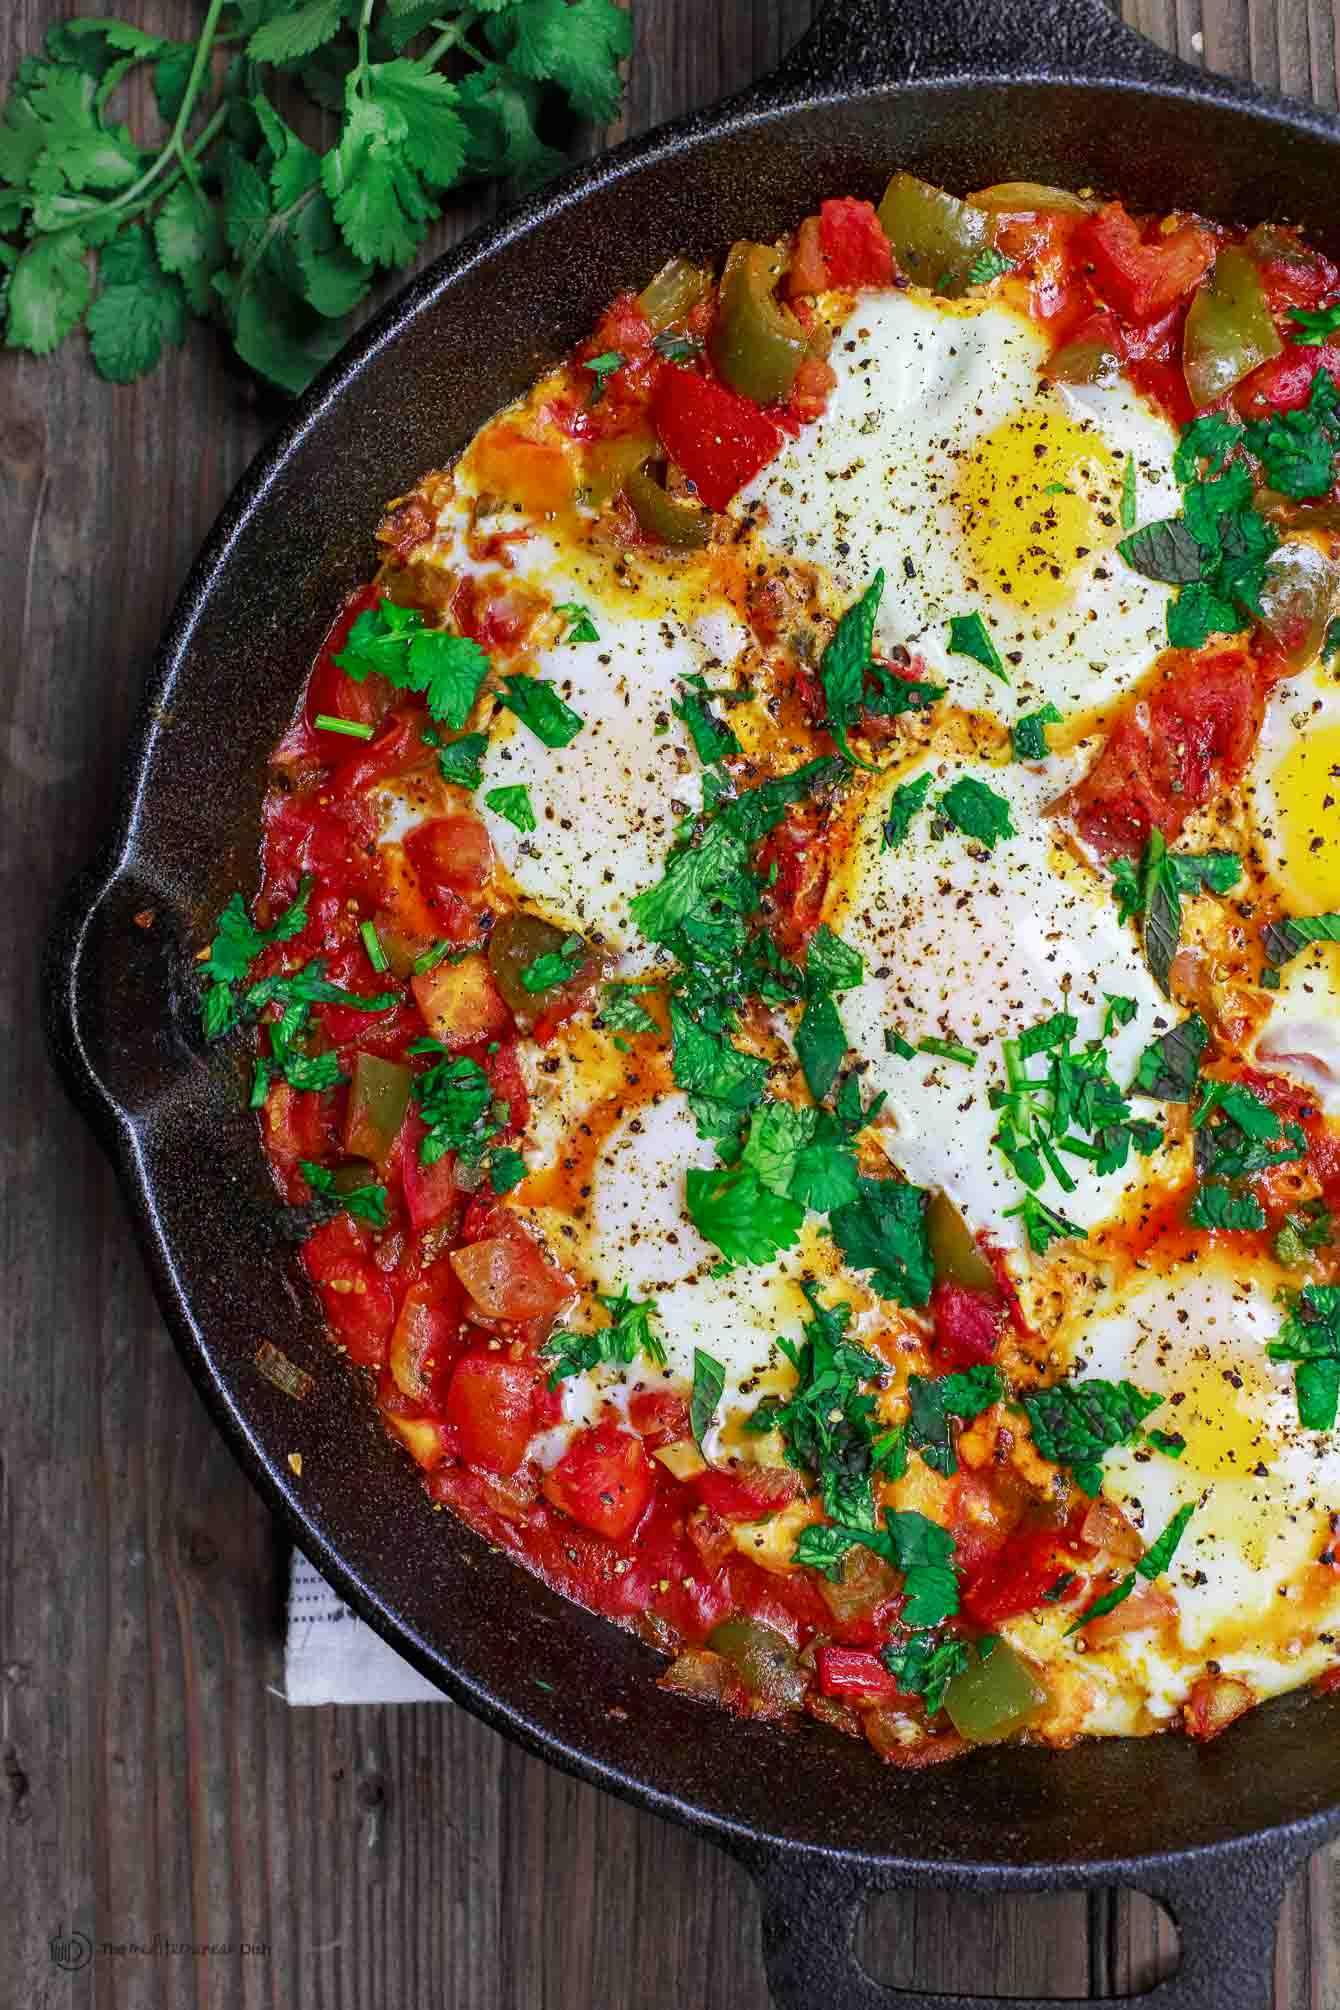 Simple Shakshuka Recipe. Part of 21 Mediterranean Christmas Brunch Recipes | The Mediterranean Dish. #christmasbrunch #brunch #mediterraneanrecipes